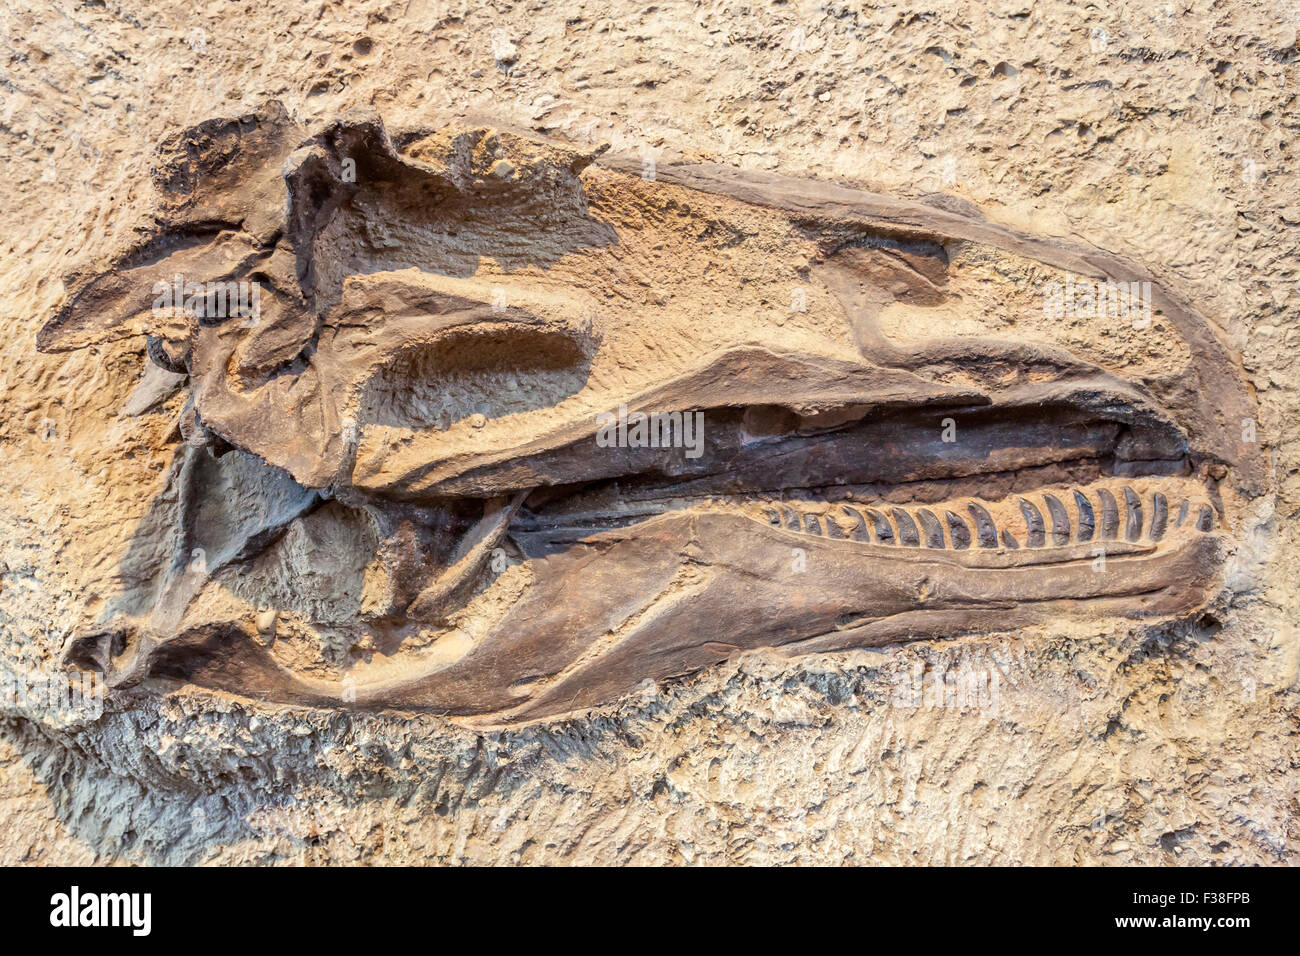 A dinosaur fossil in the Dinosaur National Monument. - Stock Image